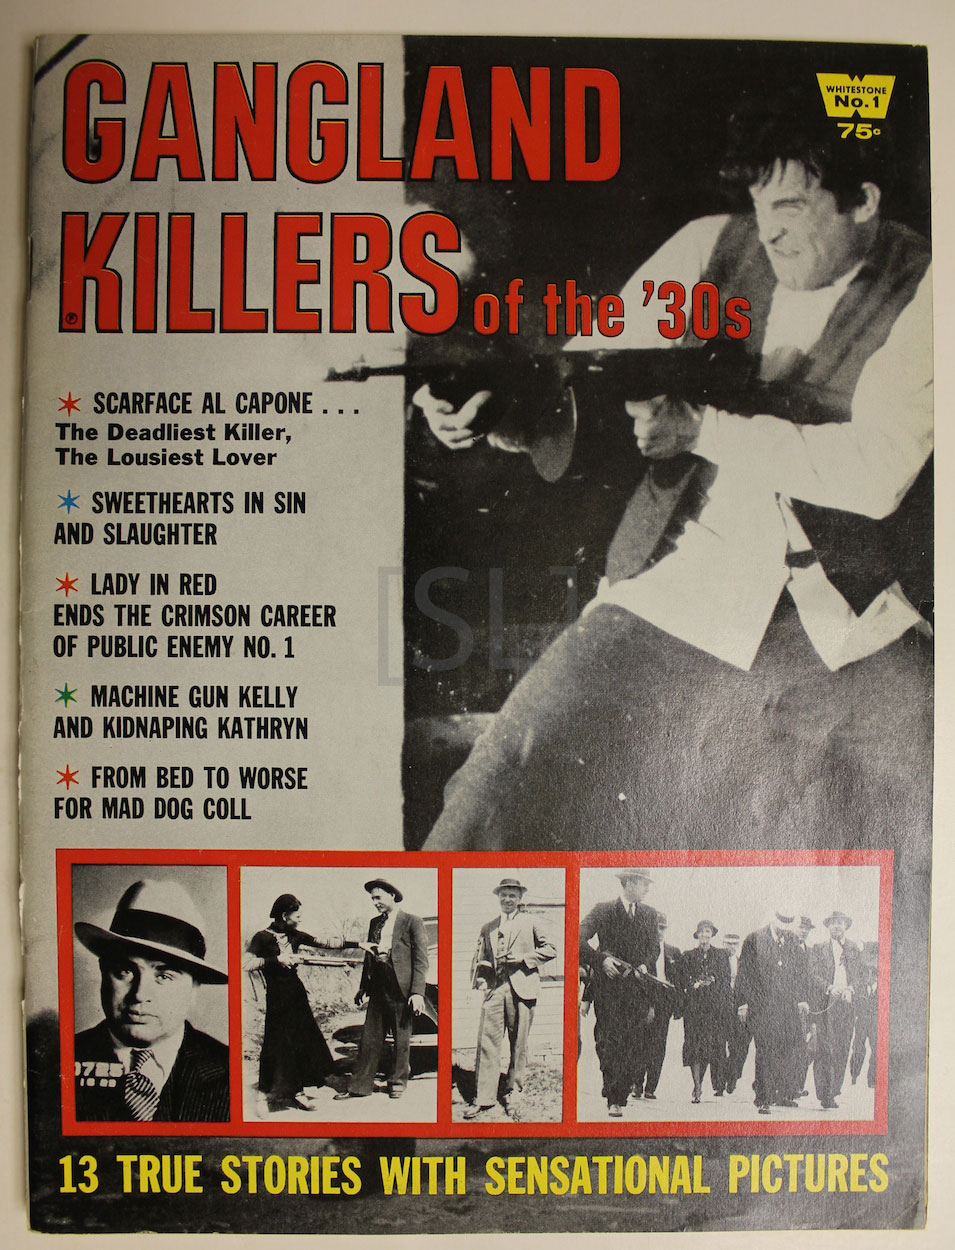 Gangland Killers of the '30s